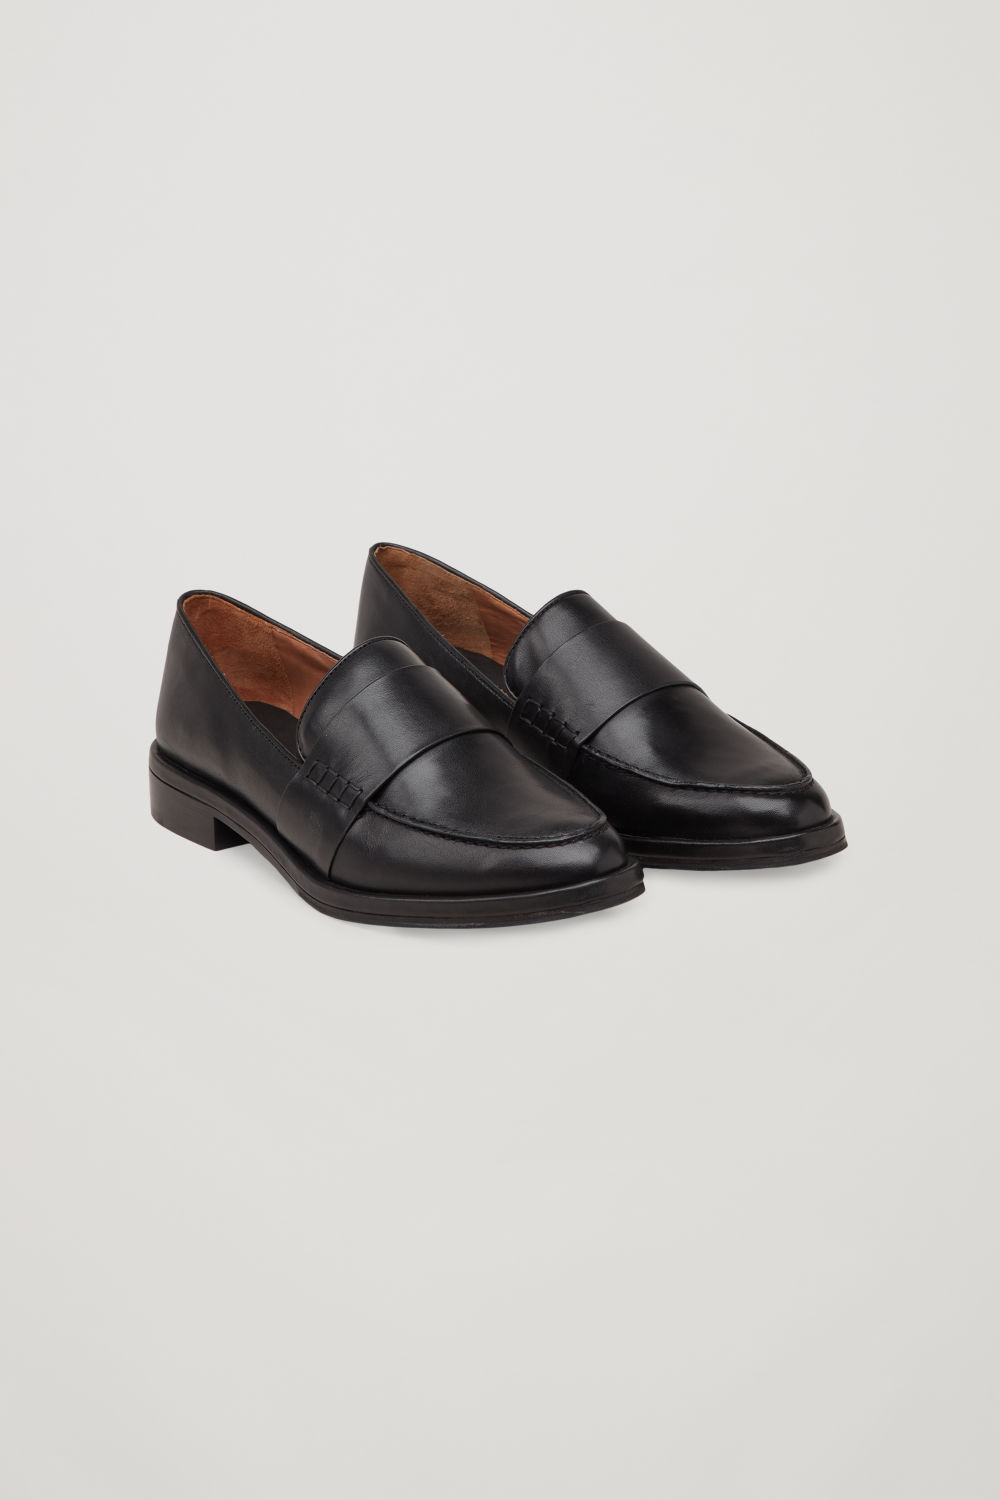 코스 COS LEATHER LOAFERS,Black